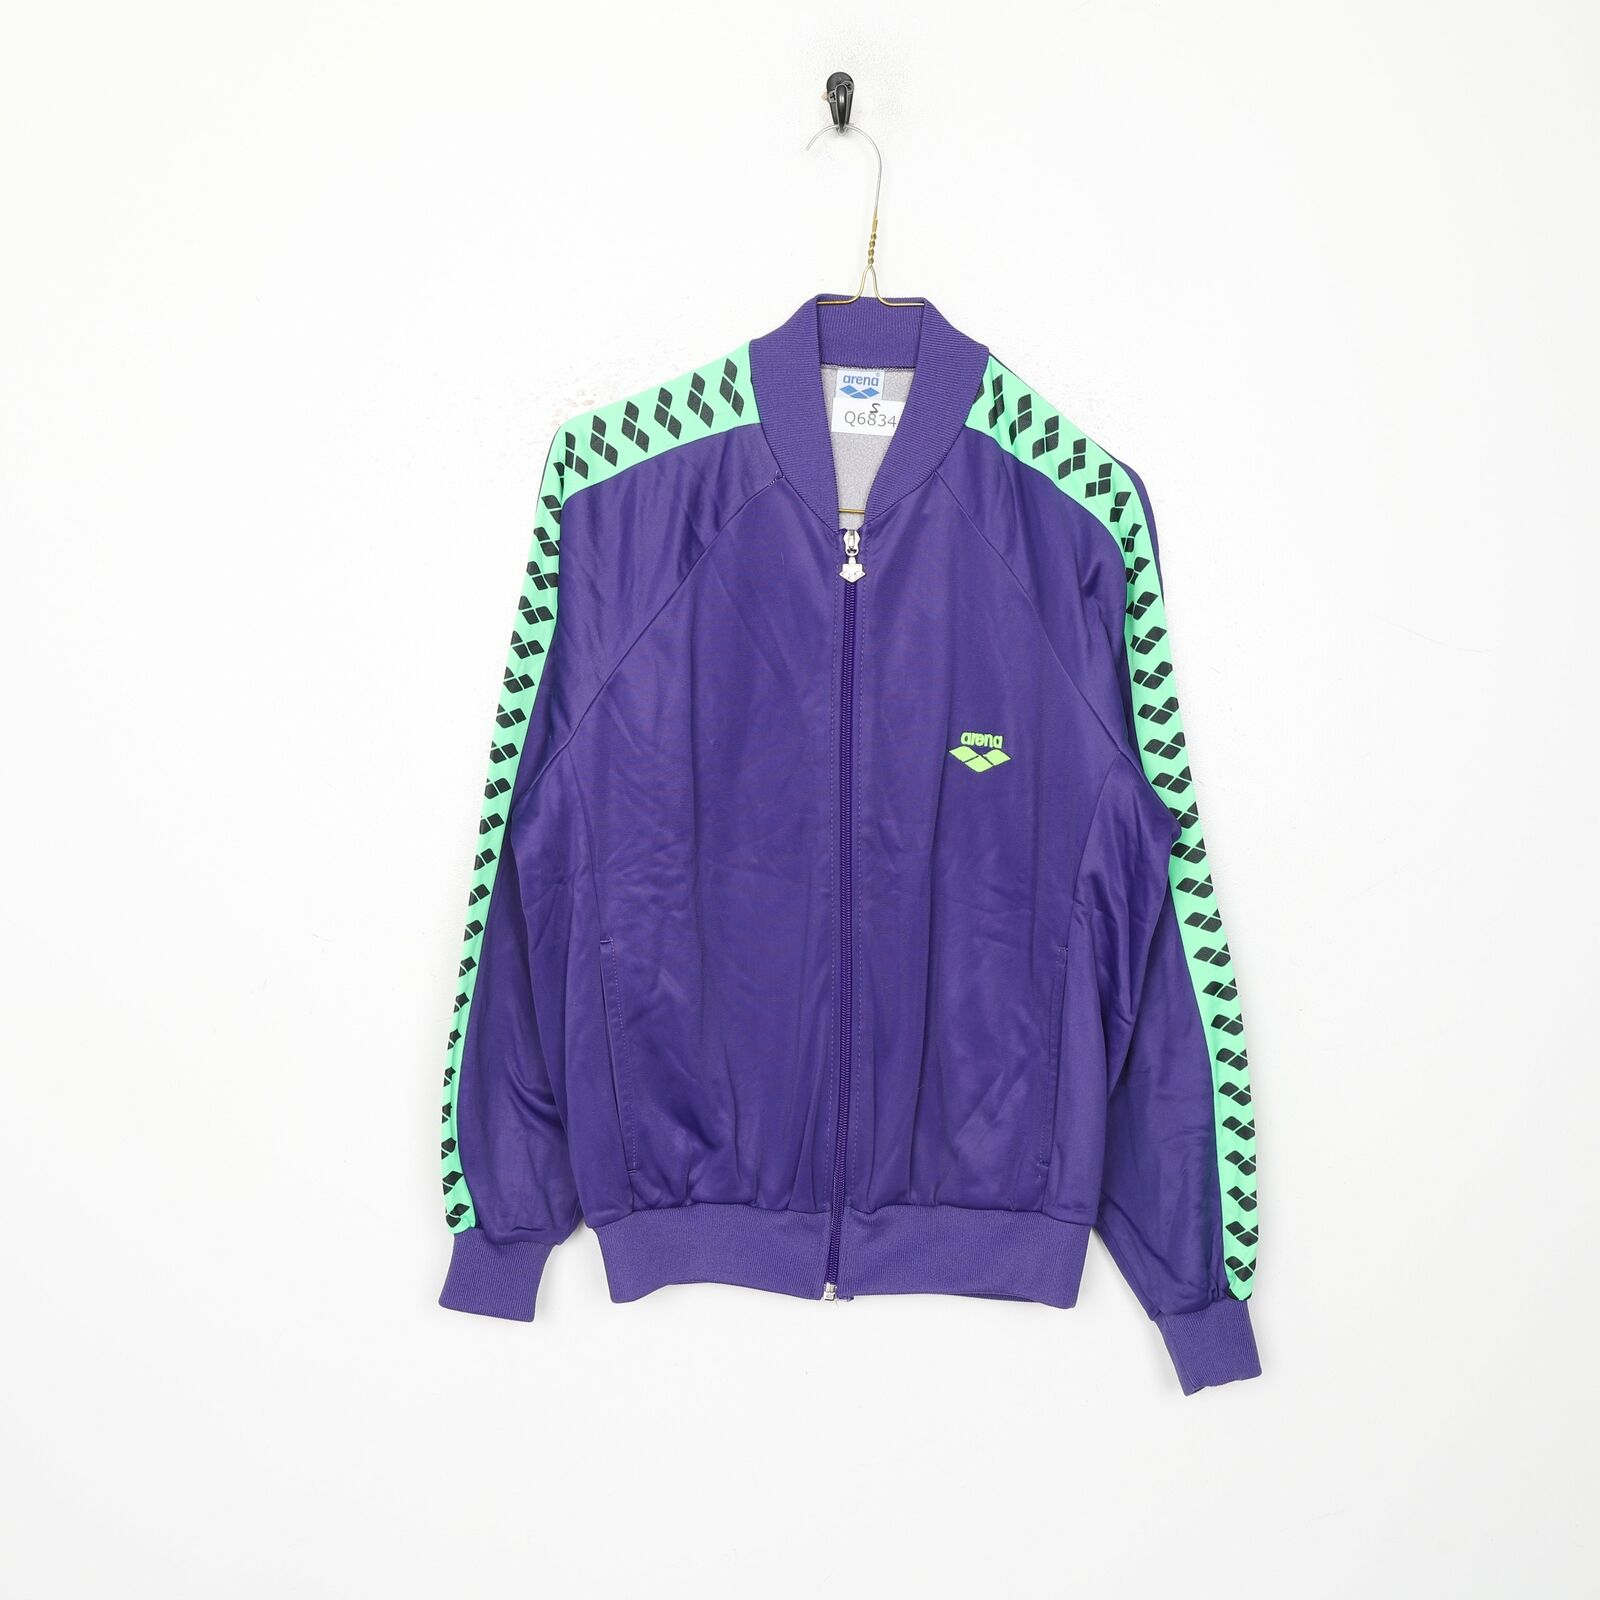 90s ARENA Tape Logo Tracksuit Top Jacket Purple | Small S